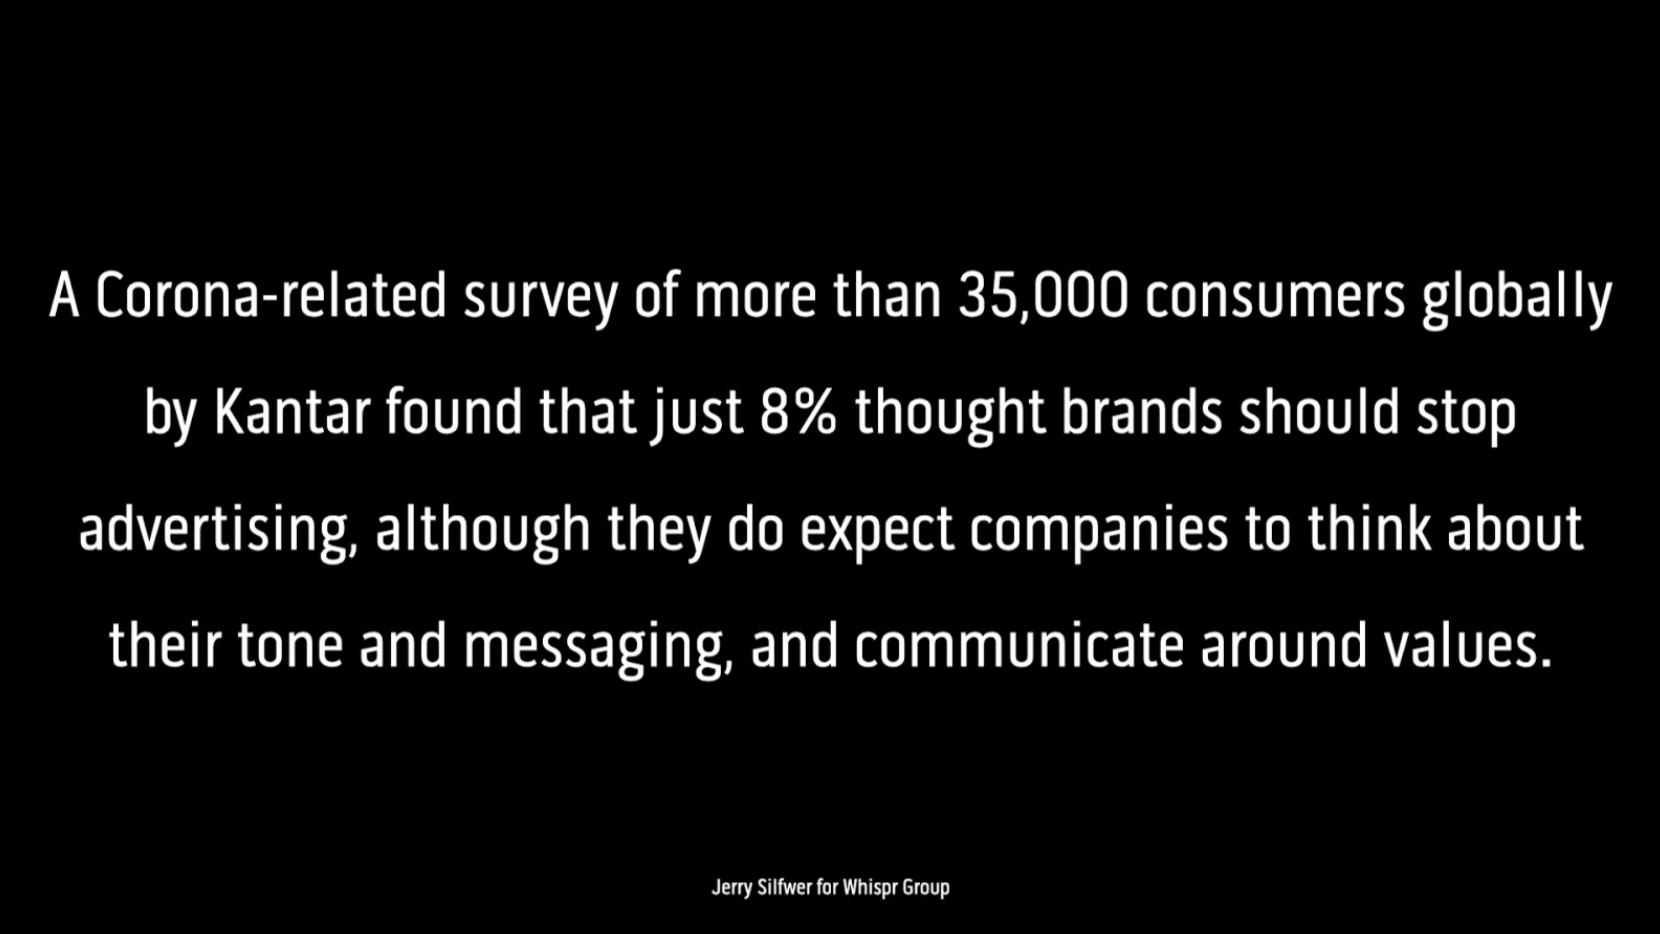 Whispr Group Communication Insights & Public Relations